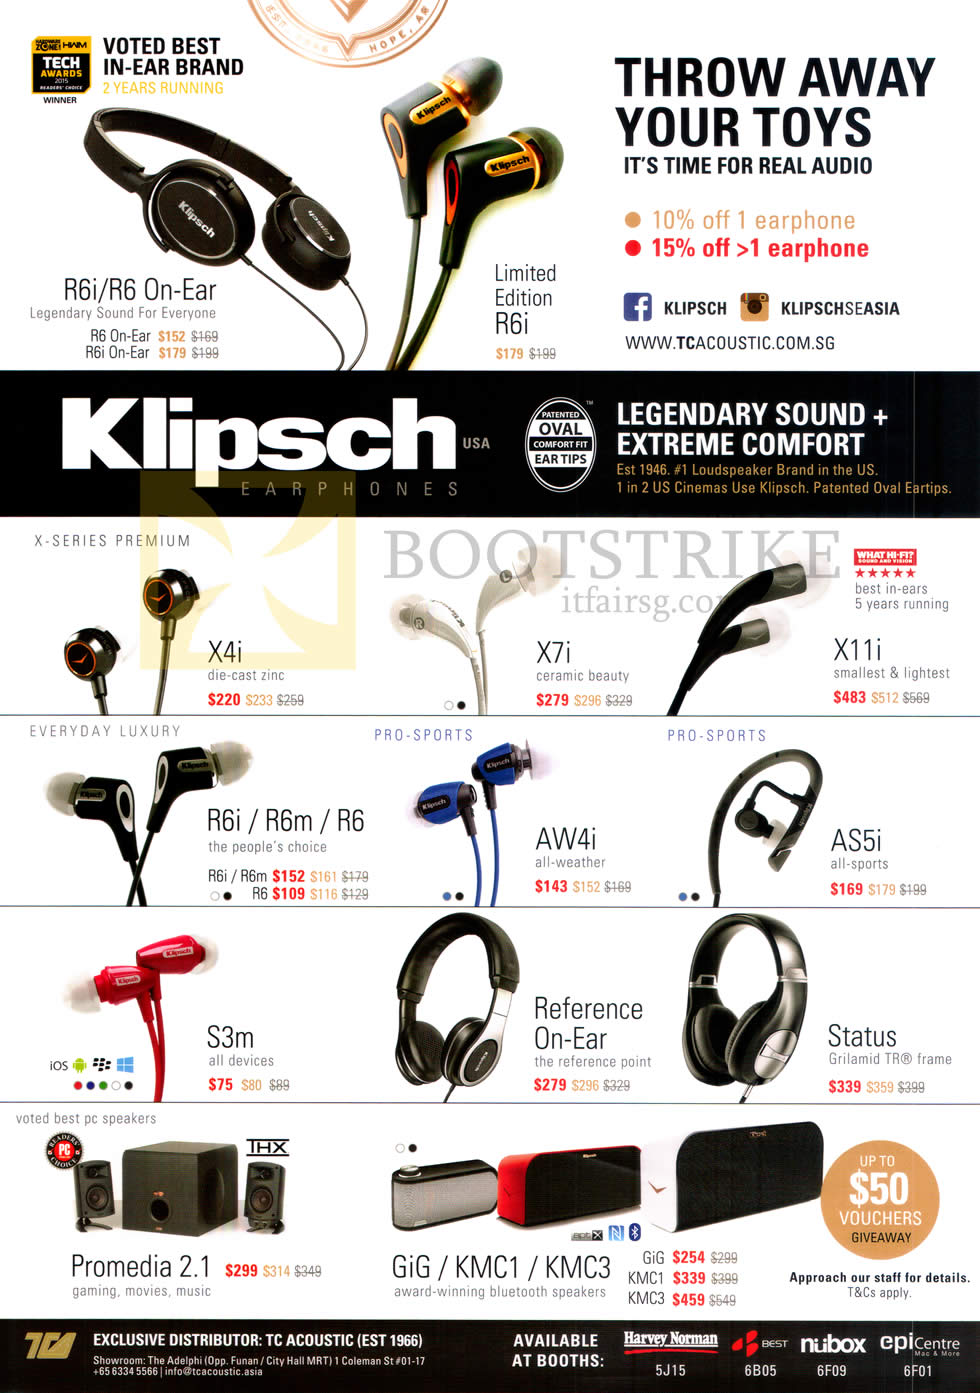 SITEX 2015 price list image brochure of Klipsch Earphones, R6i, R6 On-Ear, Limited Edition R6i, X4i, X7i, X11i, R6i, R6m, R6, S3m, X7i, AW4i, X11i, AS5i, Status, Reference On-Ear, Promedia 2.1, Gig, KMC1, KMC3